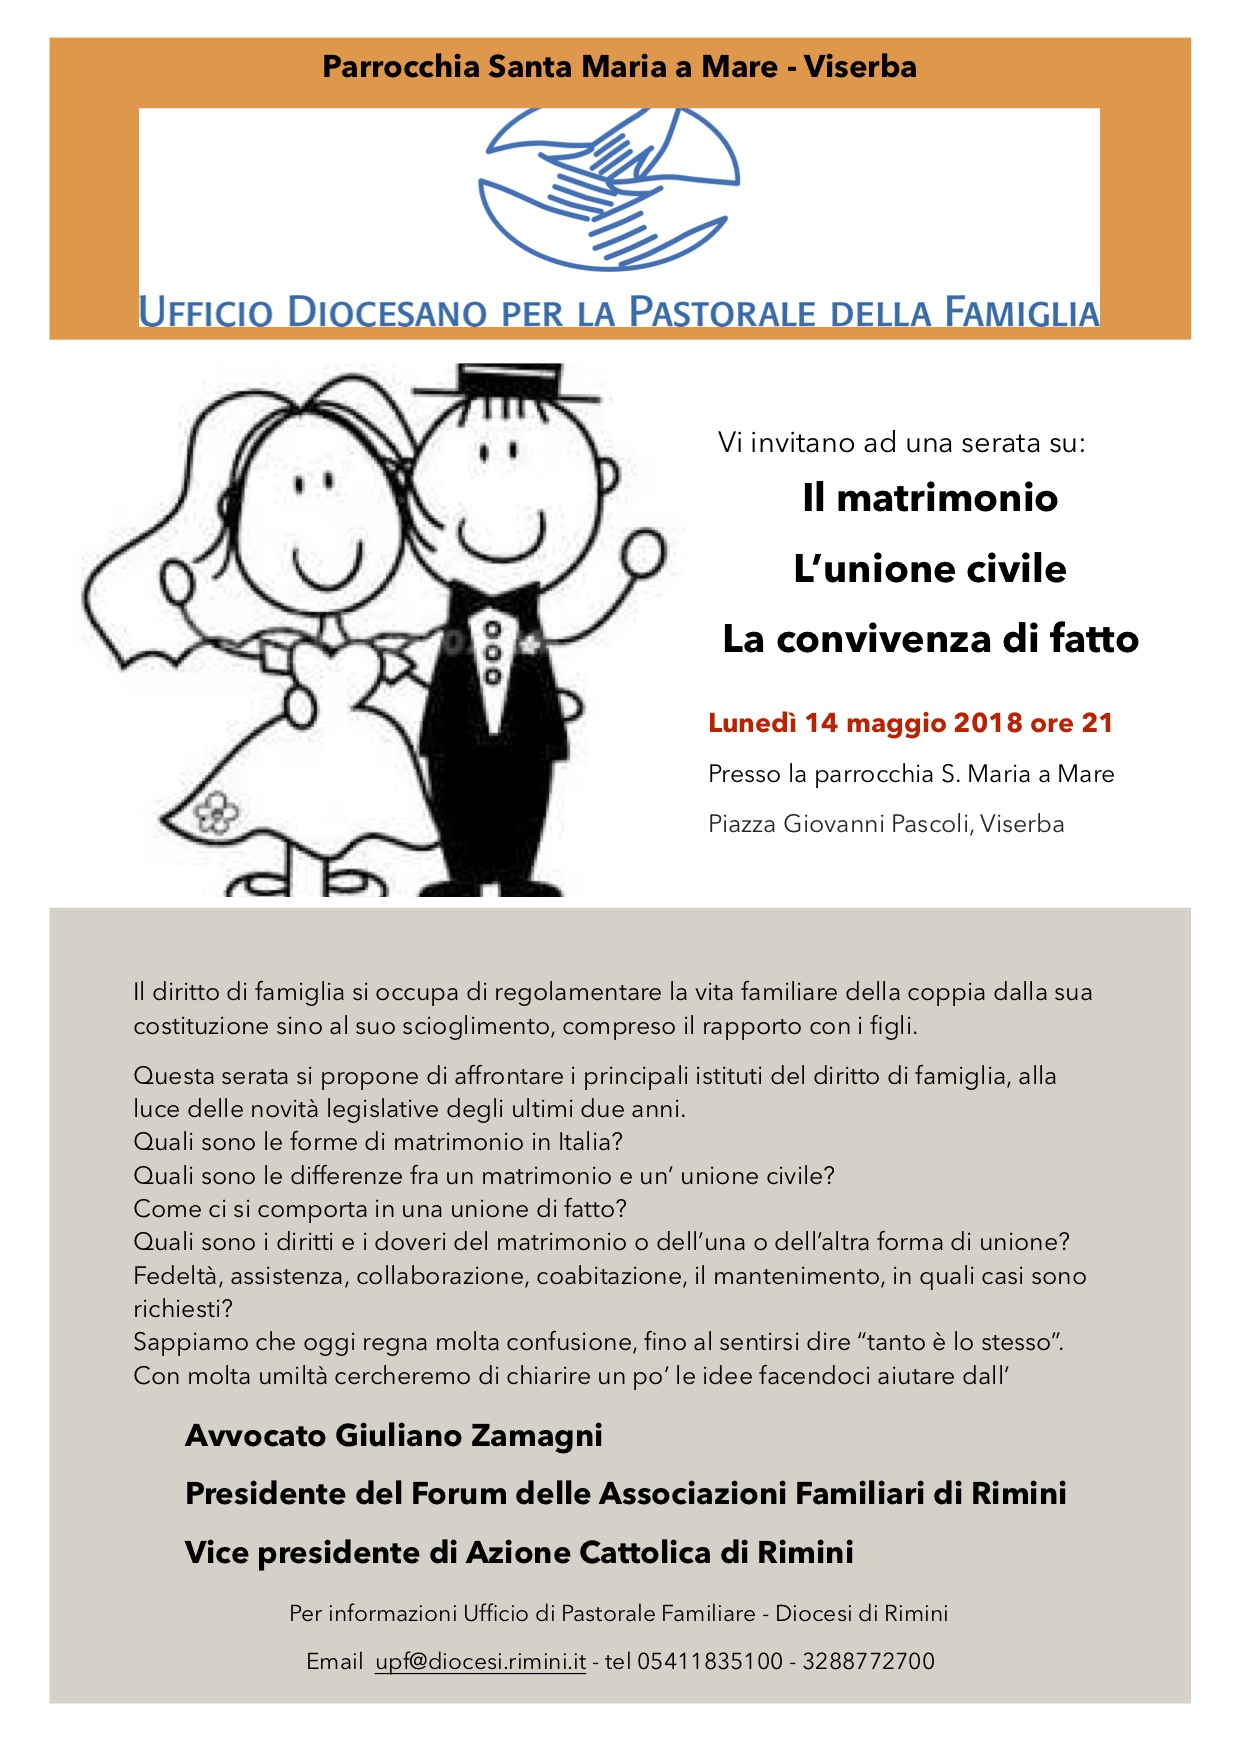 Matrimonio Unione Civile Differenza : Differenza tra unione civile e matrimonio good